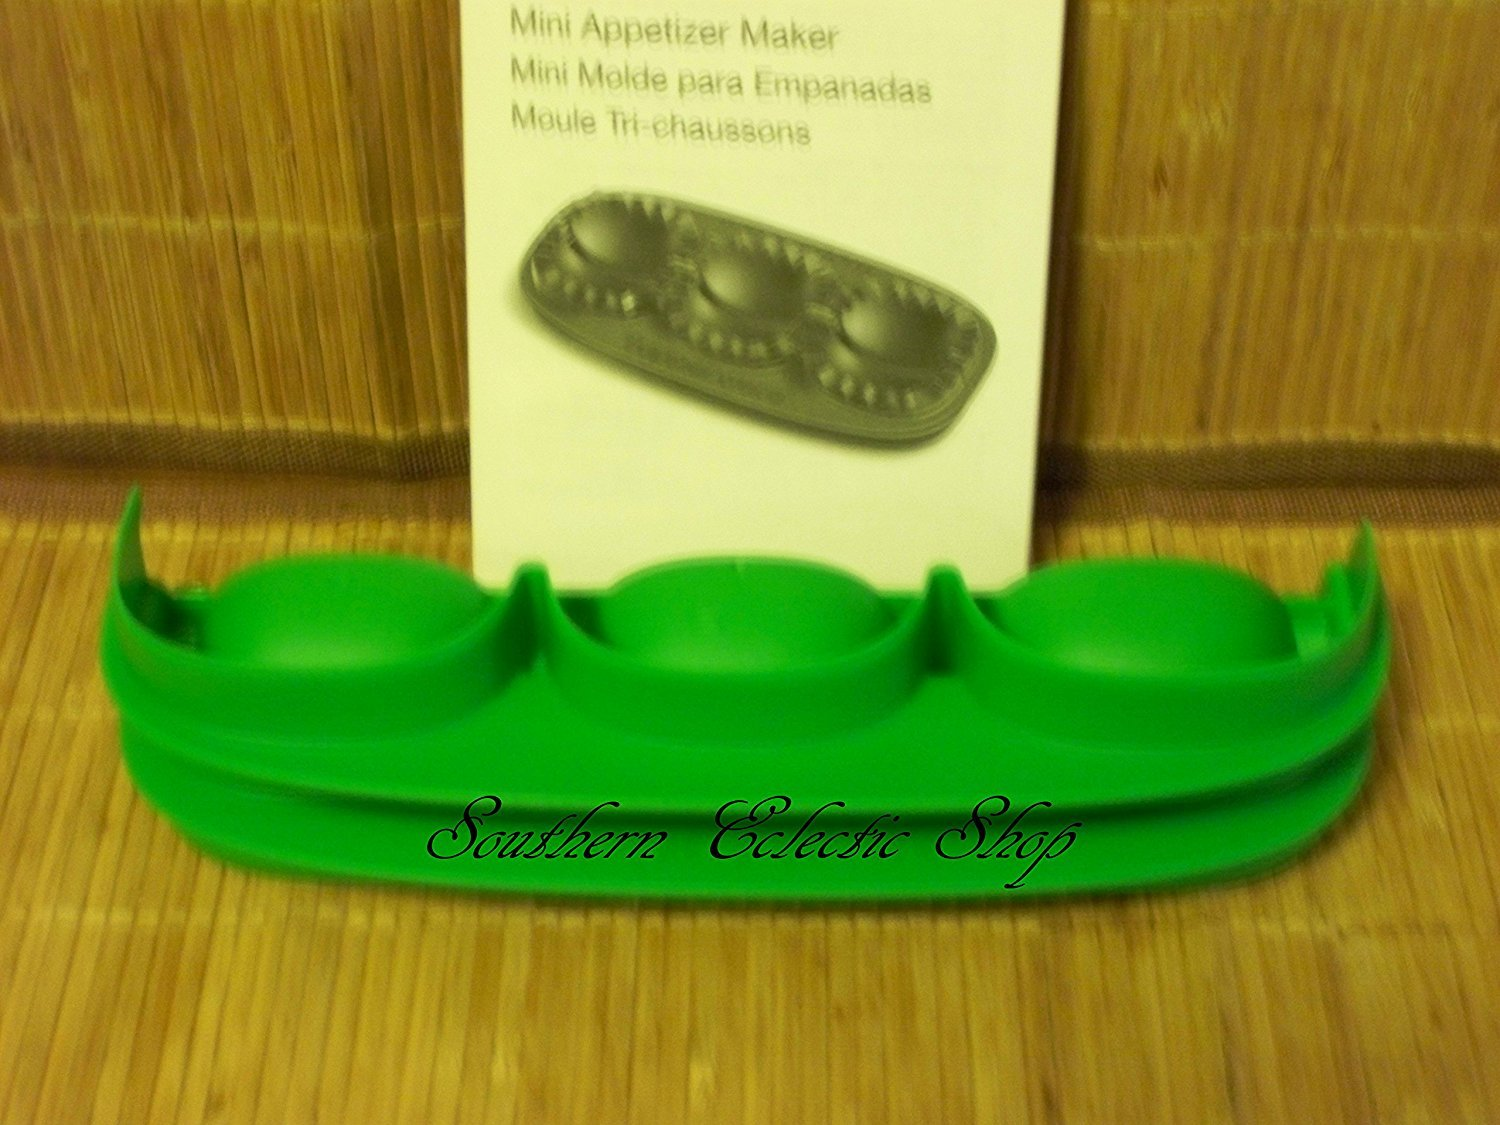 Amazon.com: Tupperware Mini Appetizer Makers Wintergreen: Pastry Crimpers: Kitchen & Dining